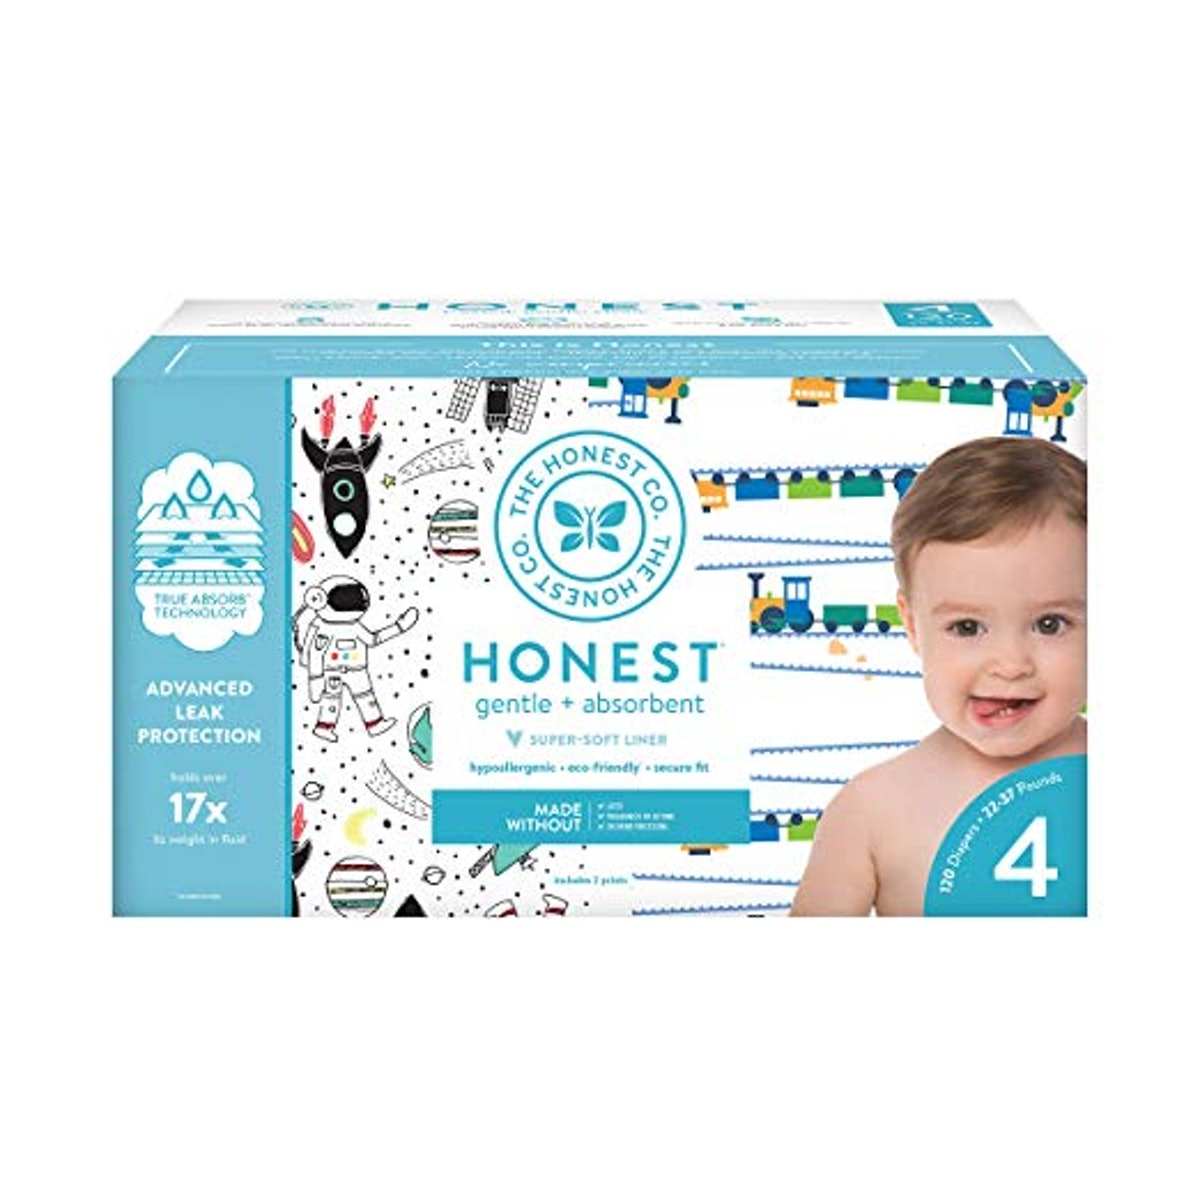 Honest Diapers On Amazon Are 40 Percent Off Today, & So Are A Bunch Of Other Honest Products